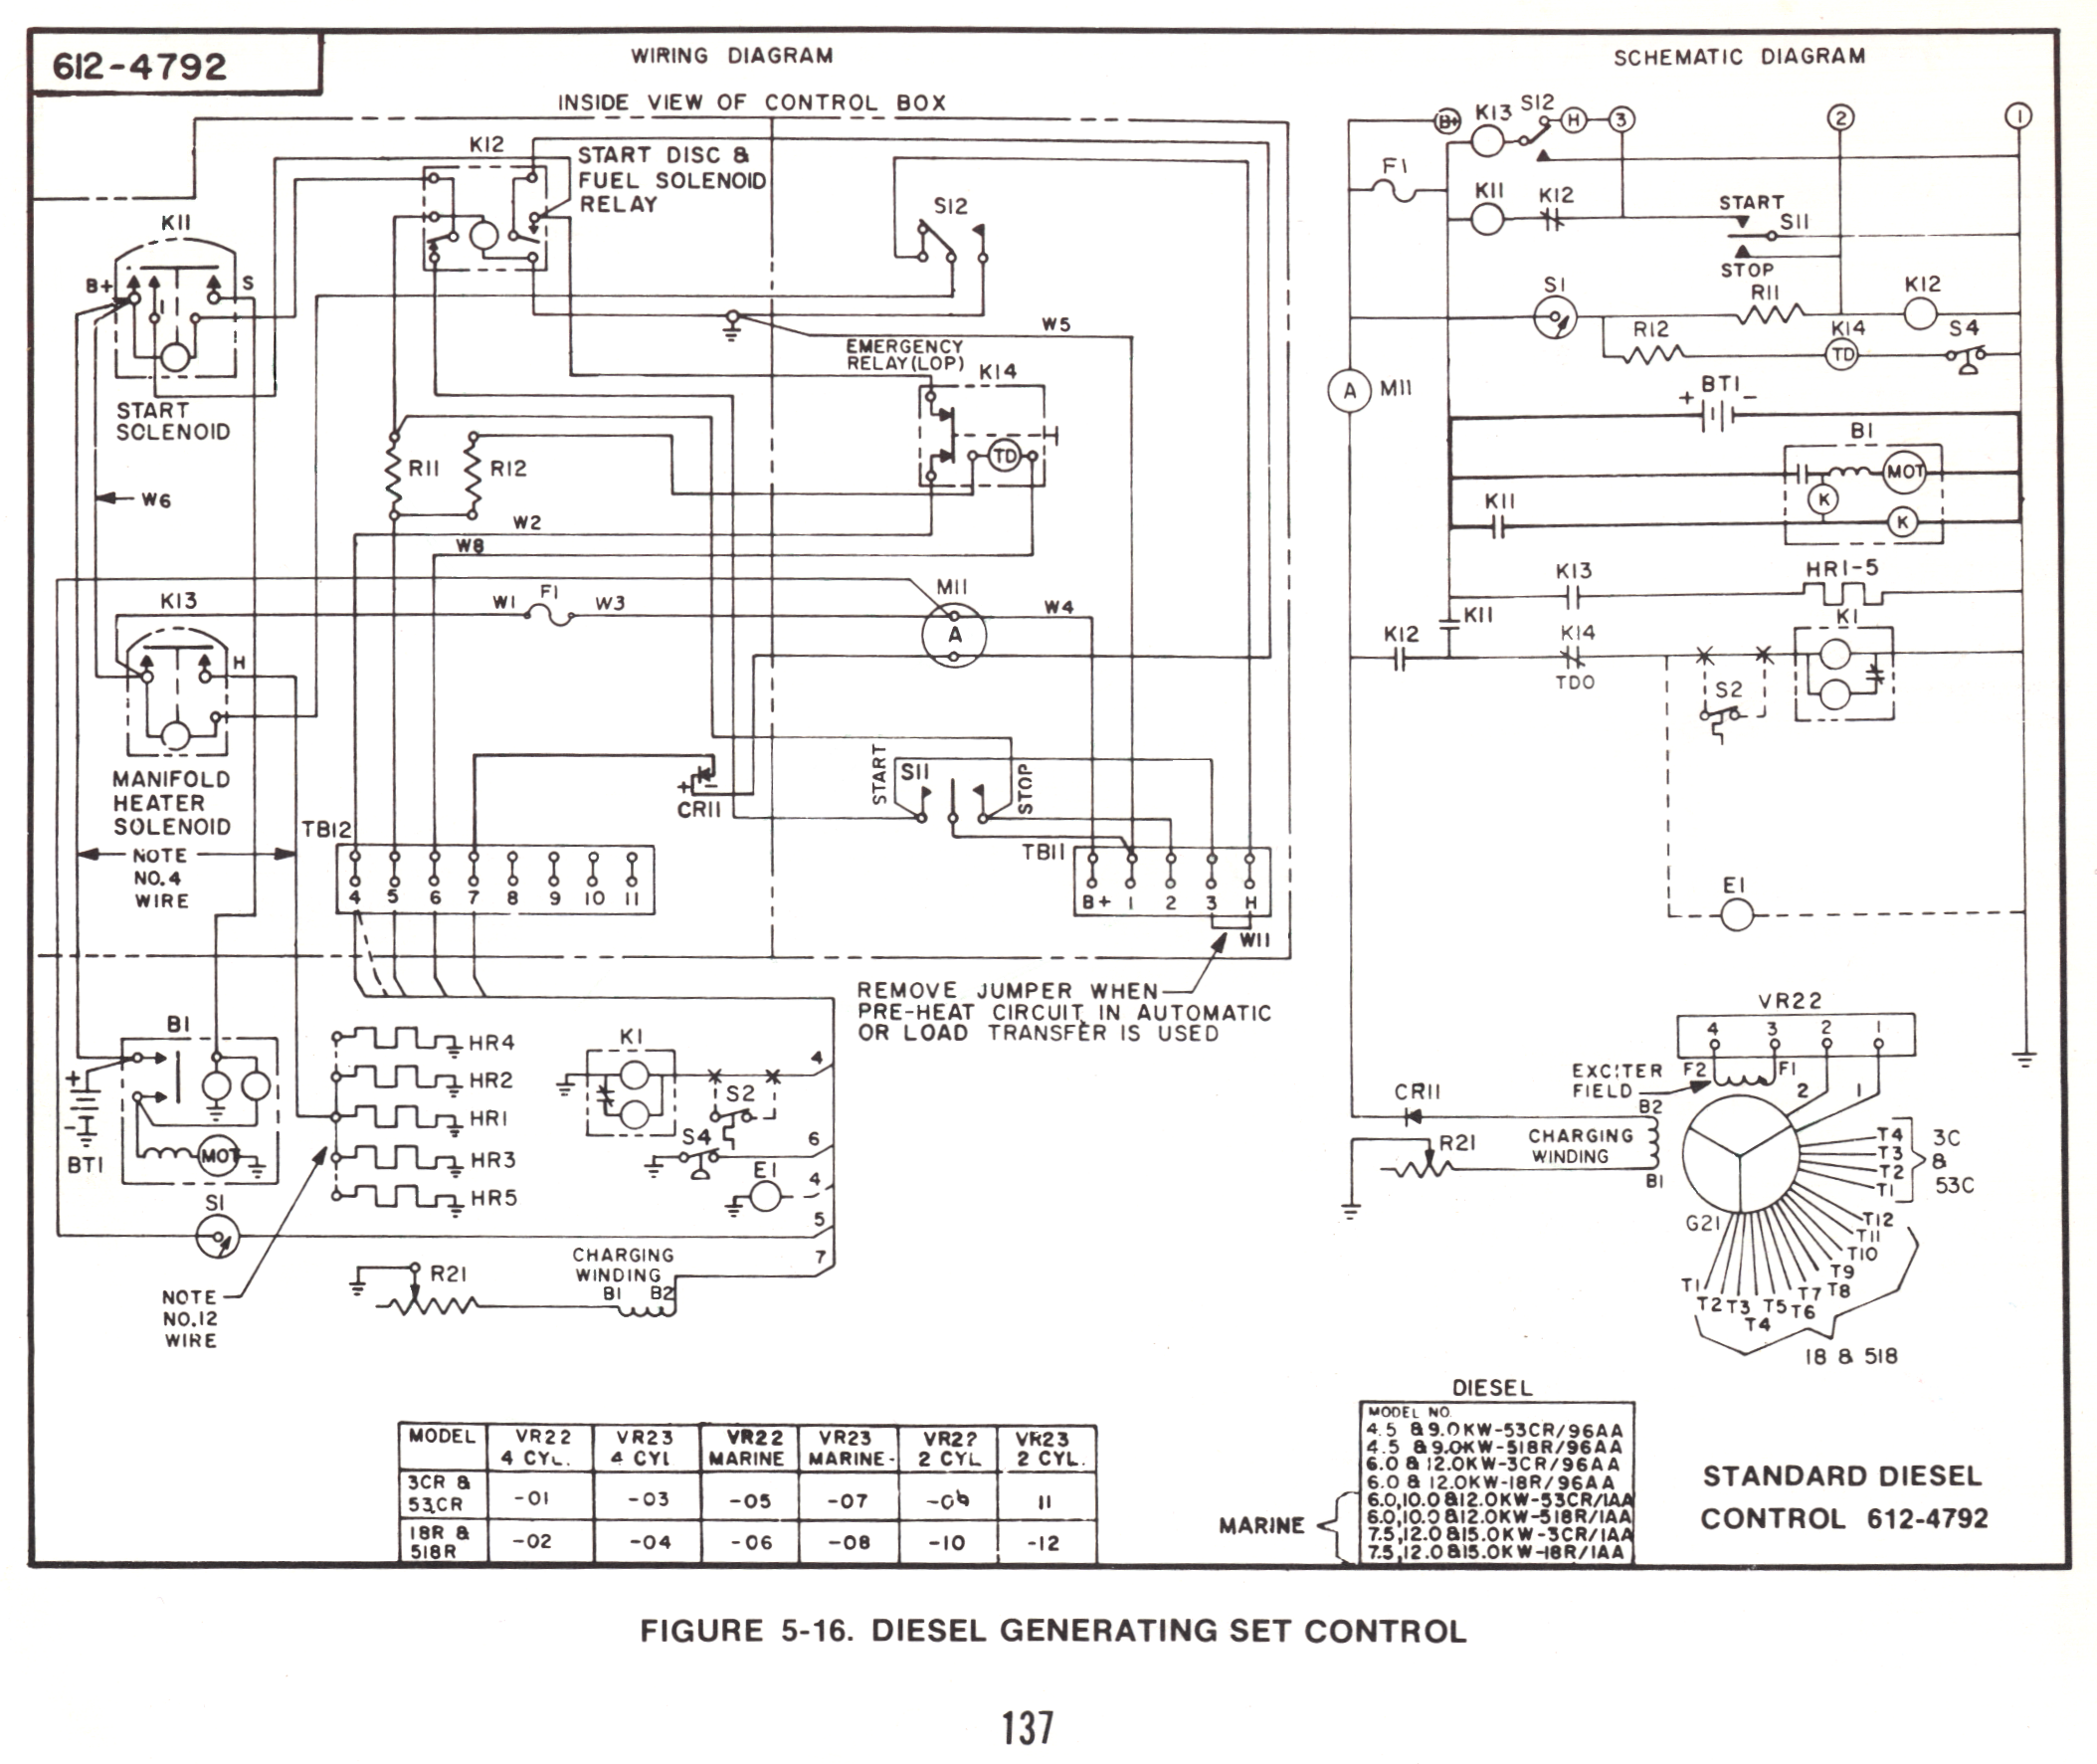 Onan_Diesel_Controls_612 4792_b onan wiring diagram onan wiring diagram 611 1127 \u2022 wiring diagrams onan 5500 marquis gold generator wiring diagram at reclaimingppi.co